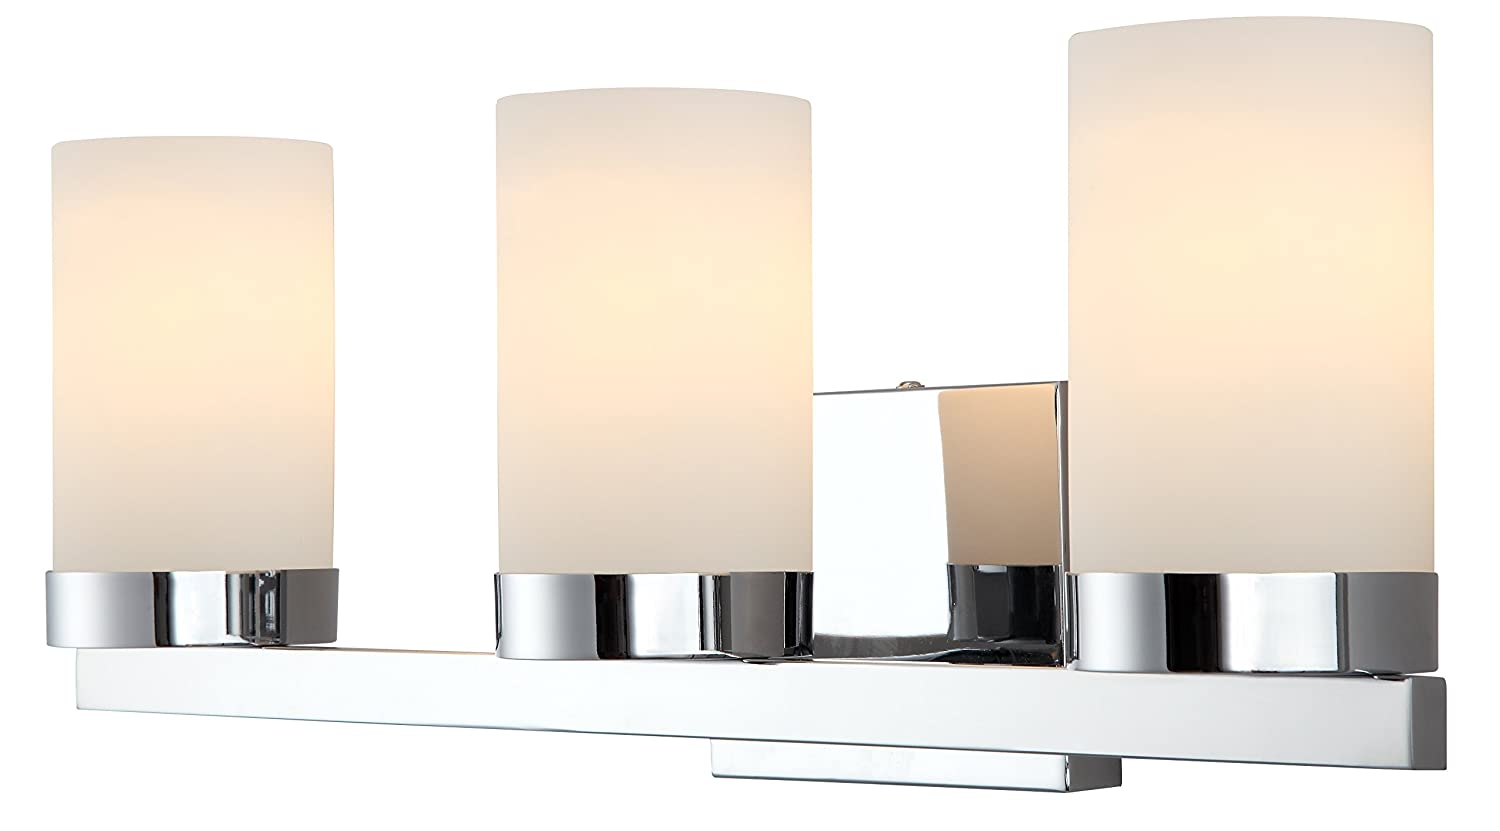 Charming Amazon.com: Canarm IVL429A03CH Milo 3 Light Bath Vanity, Chrome: Home  Improvement Amazing Pictures